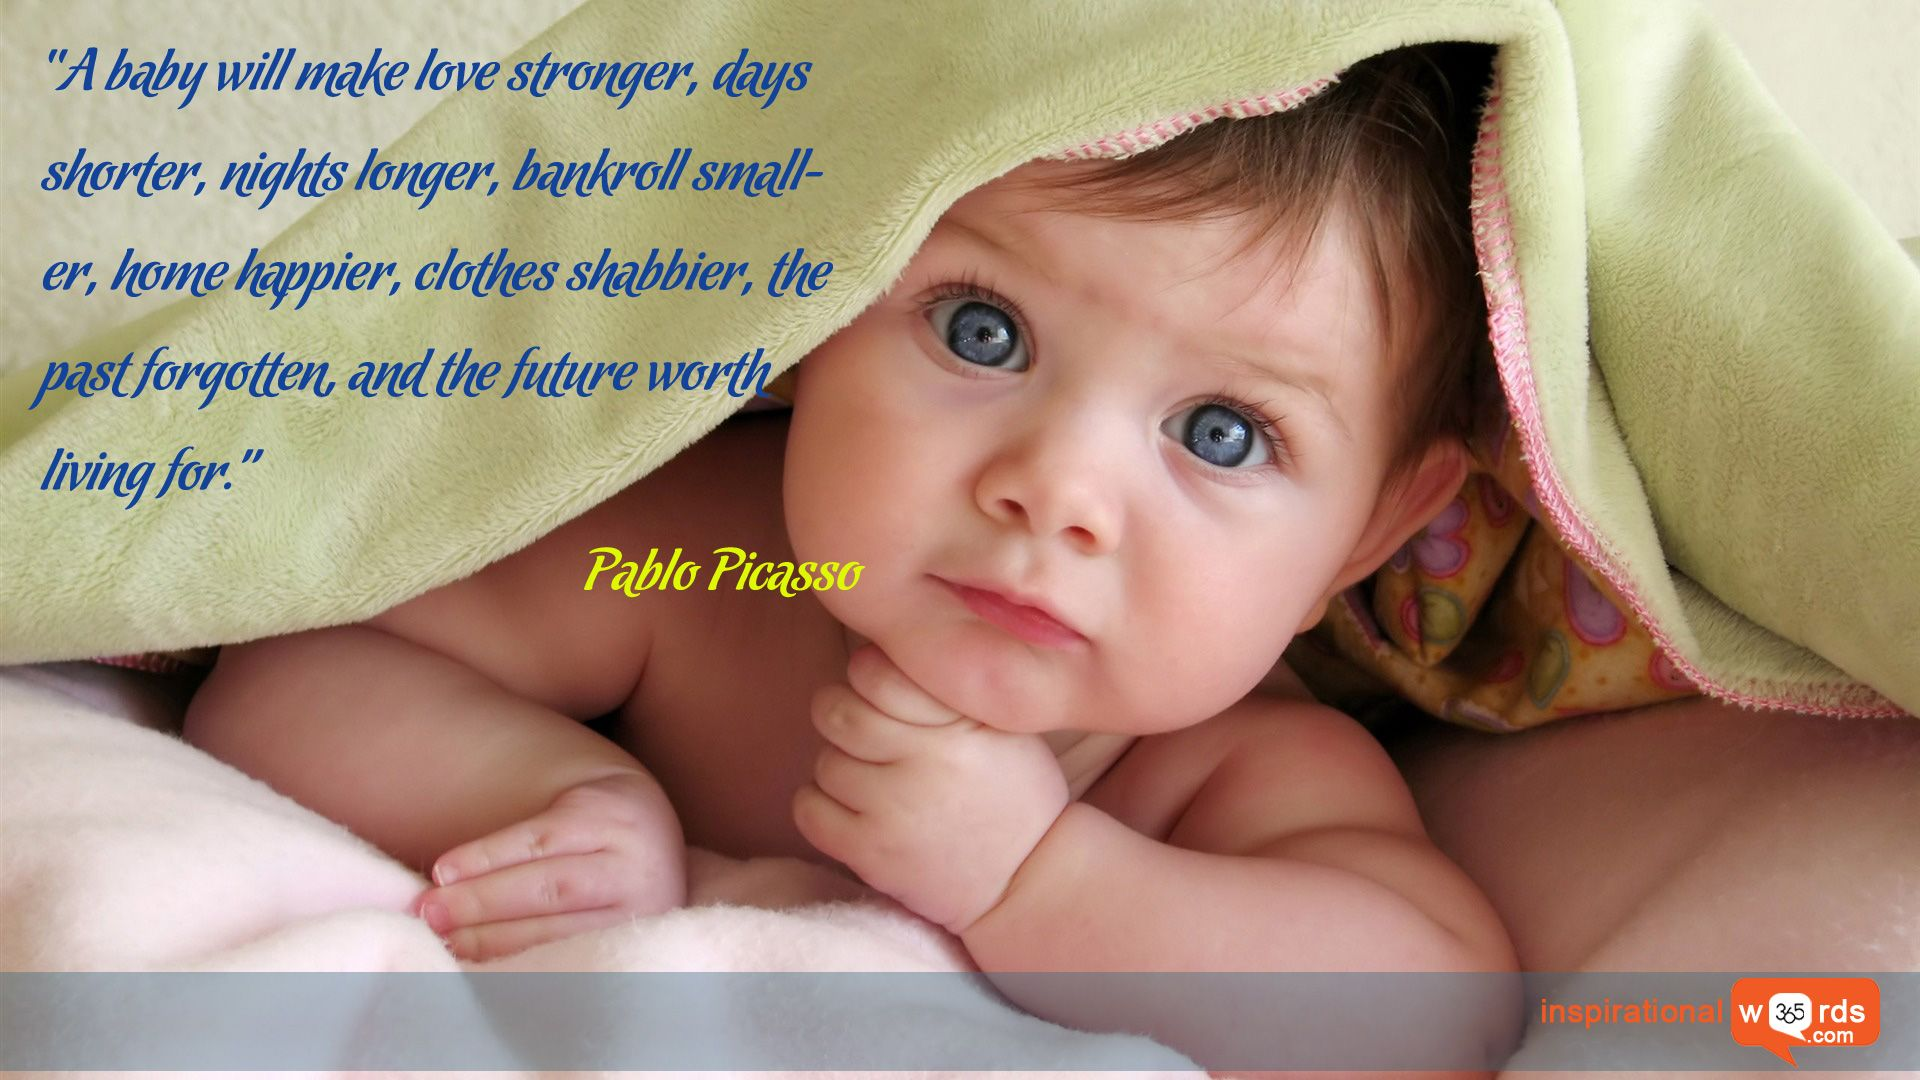 """Inspirational Wallpaper Quote by Pablo Picasso """"A baby will make love stronger days shorter"""